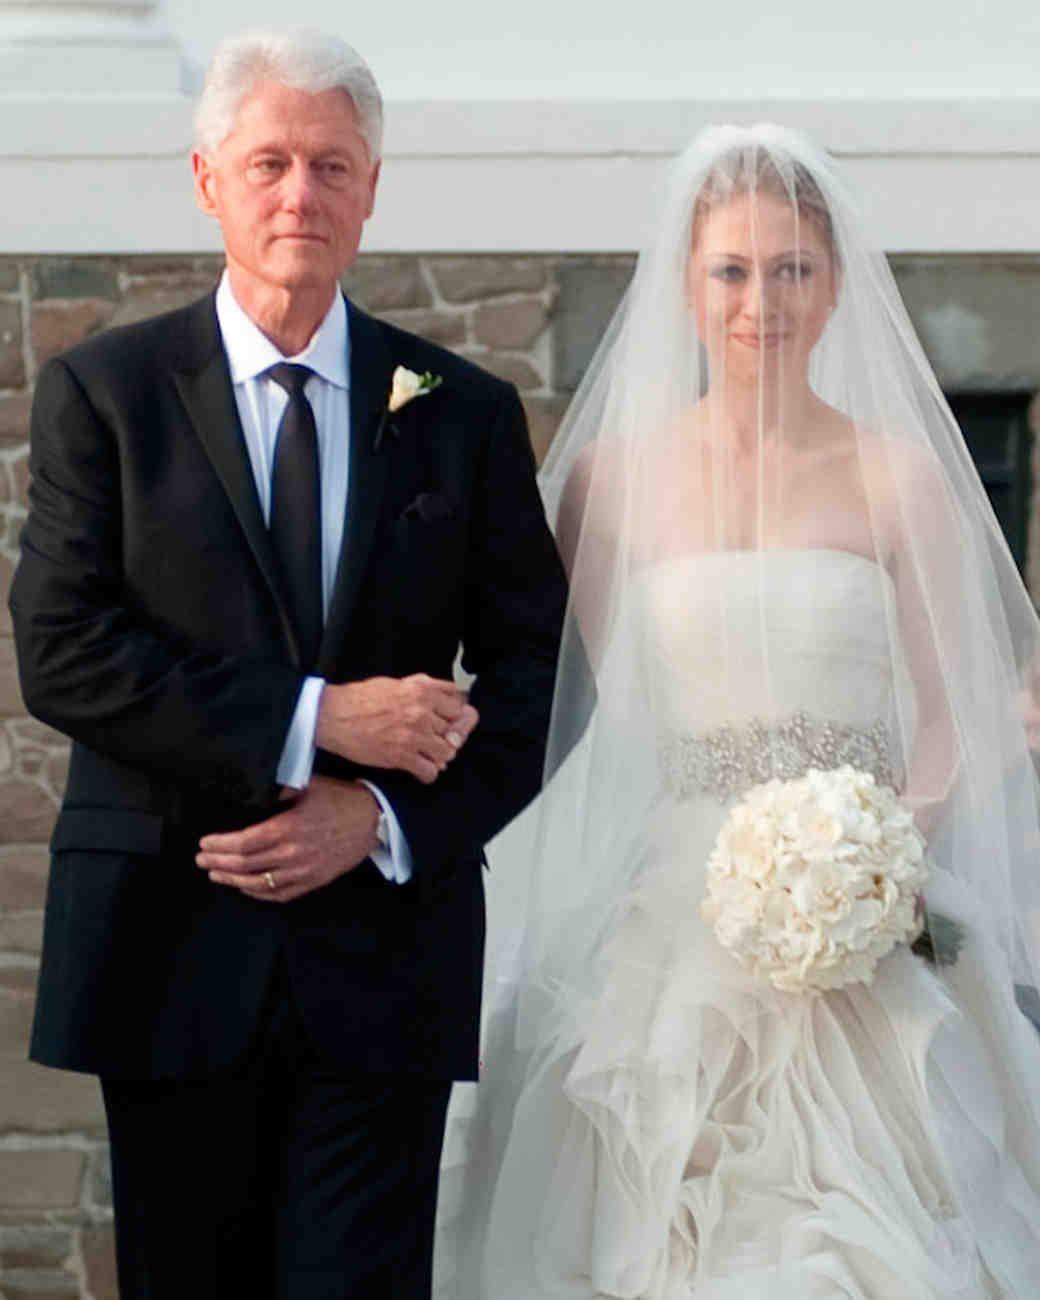 Chelsea linton weddings chelsealintonweddings com read more http - 26 Celebrity Brides Who Wore Unforgettable Veils Martha Stewart Weddings